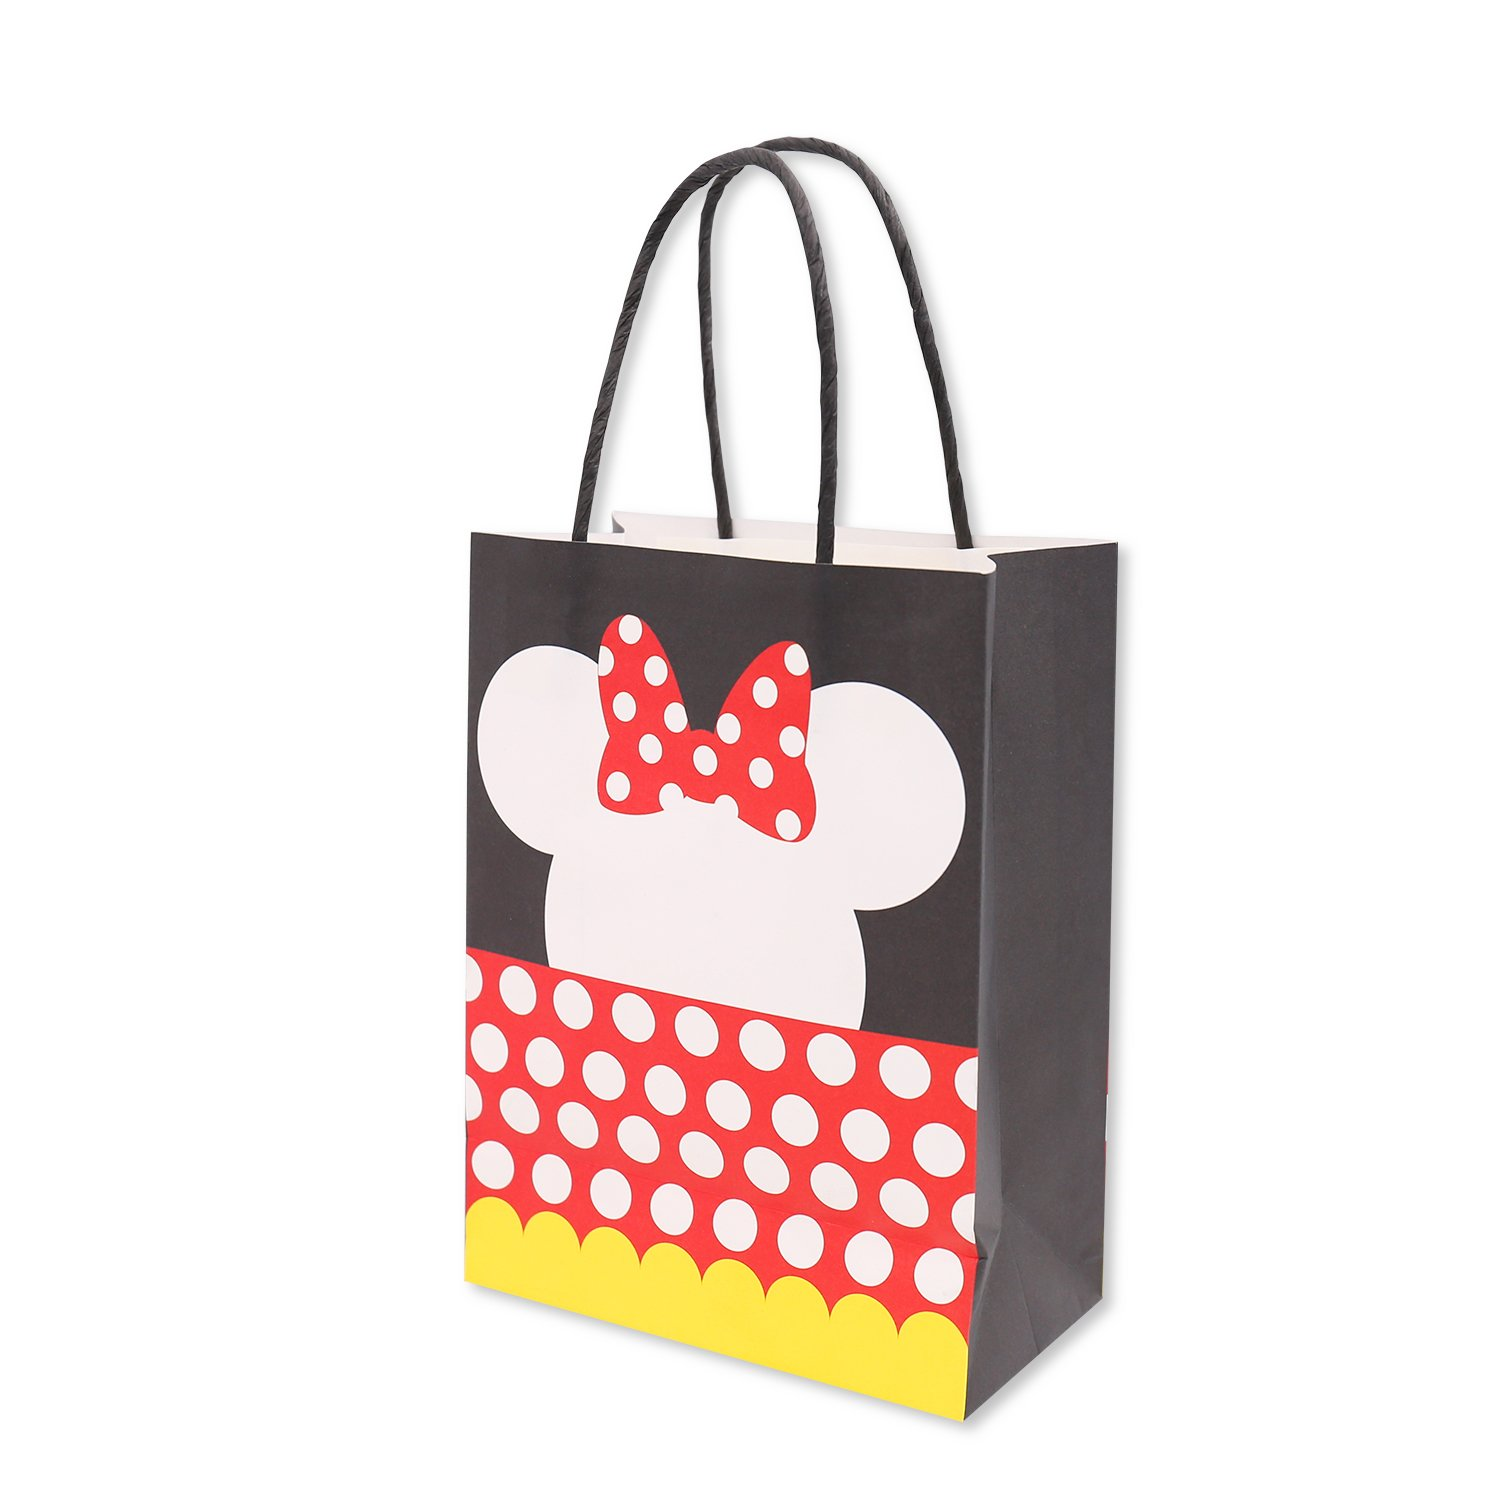 Minnie Inspired Paper Gift Bags for Kids Birthday Party Favor Supplies Pack of 12